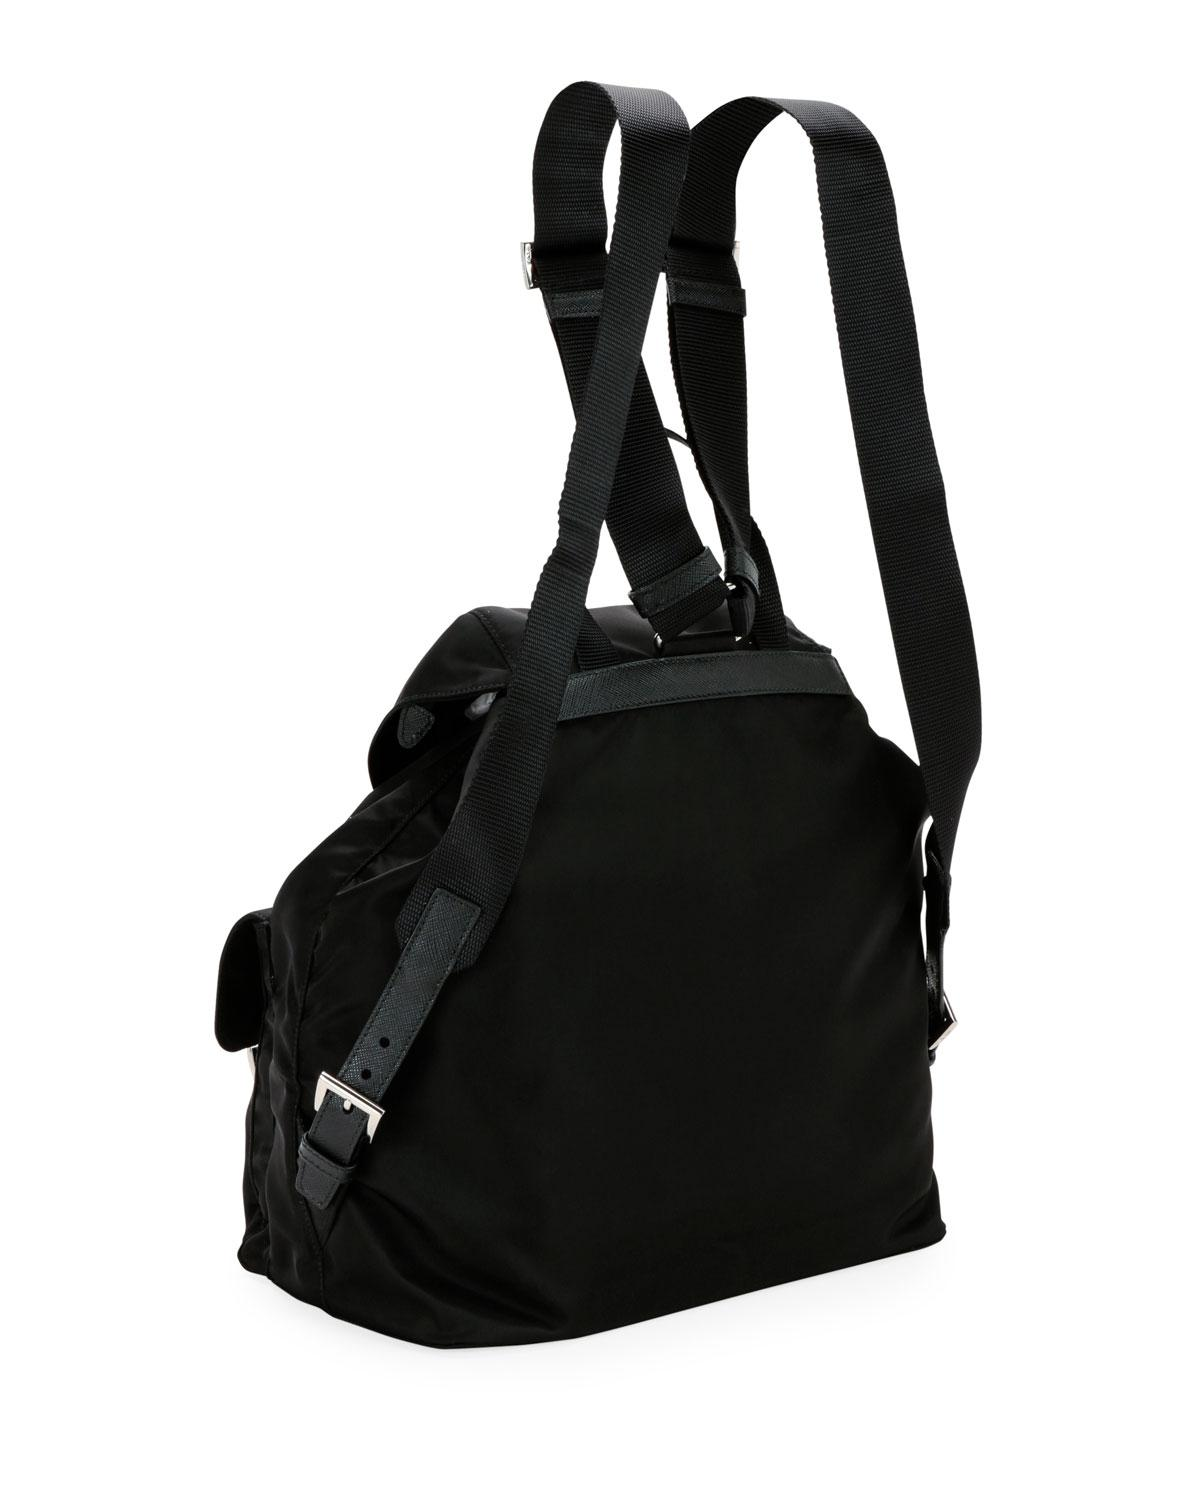 d108d8ce1e08 Lyst - Prada Nylon Backpack With Graphic Appliqués in Black